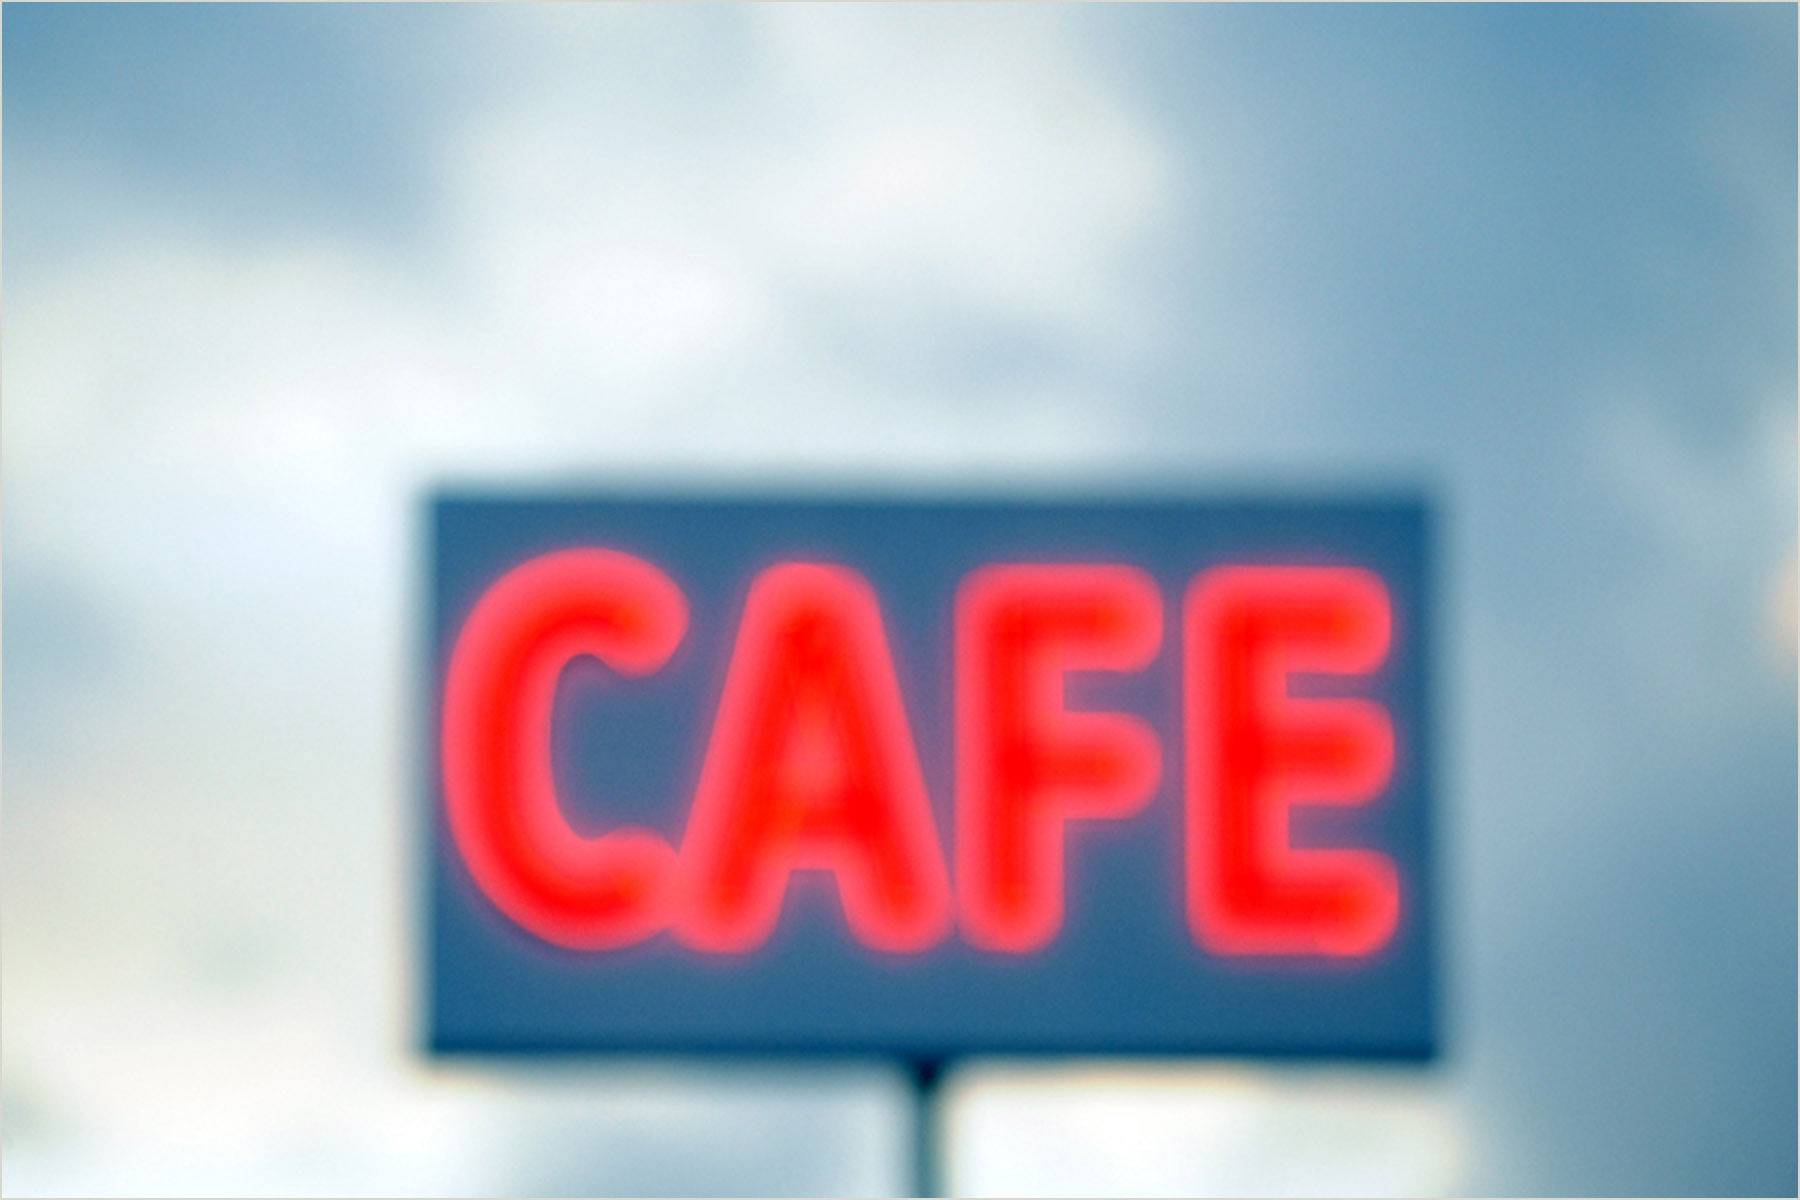 11_1cafe_sign_for_2012_website.jpg